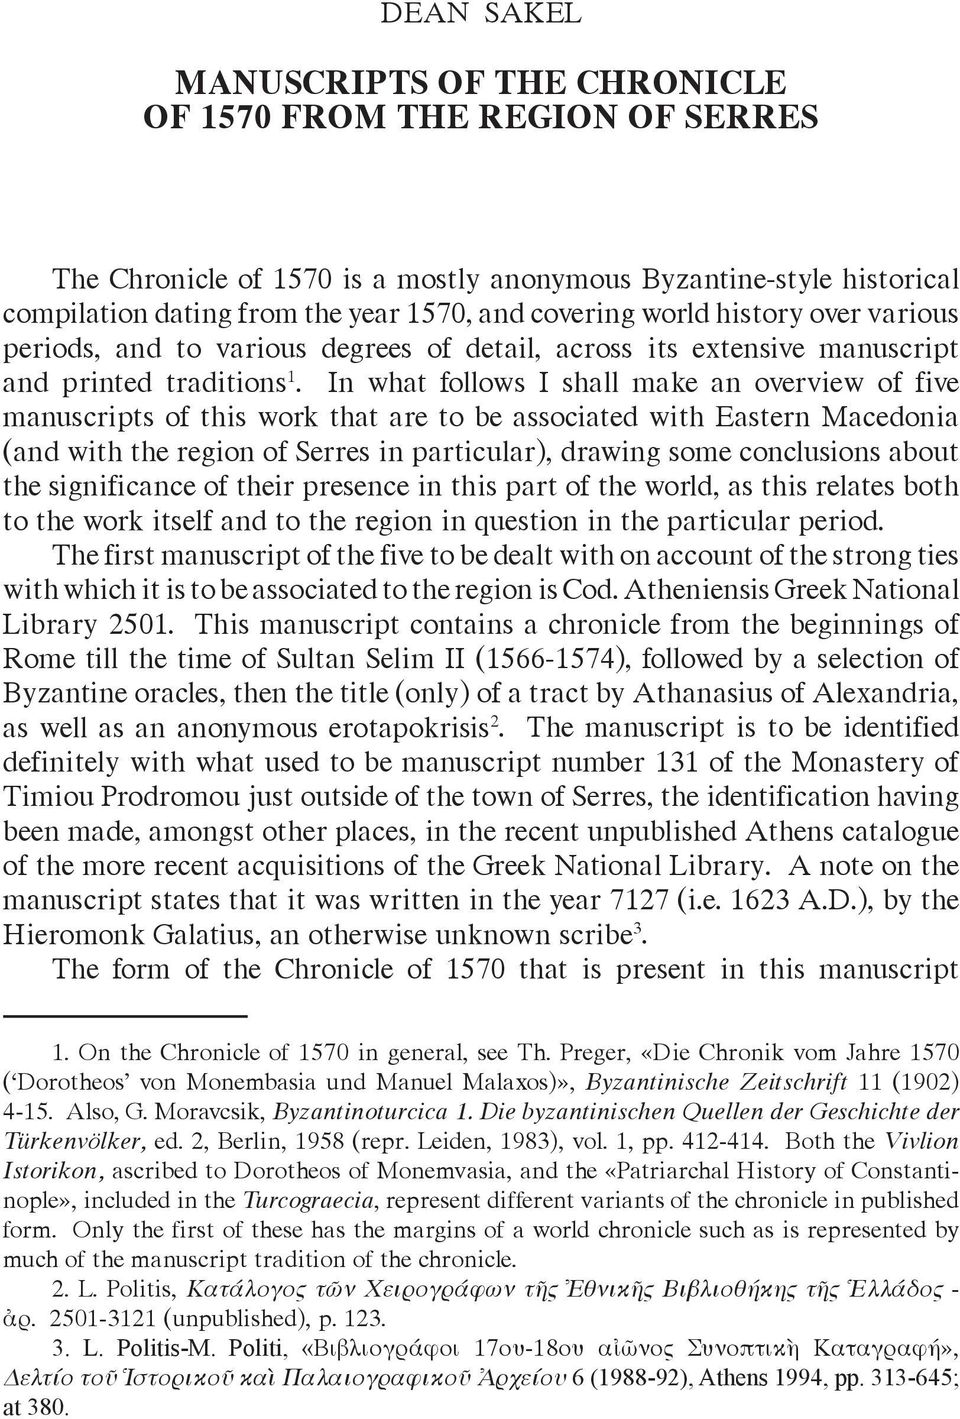 In what follows I shall make an overview of five manuscripts of this work that are to be associated with Eastern Macedonia (and with the region of Serres in particular), drawing some conclusions